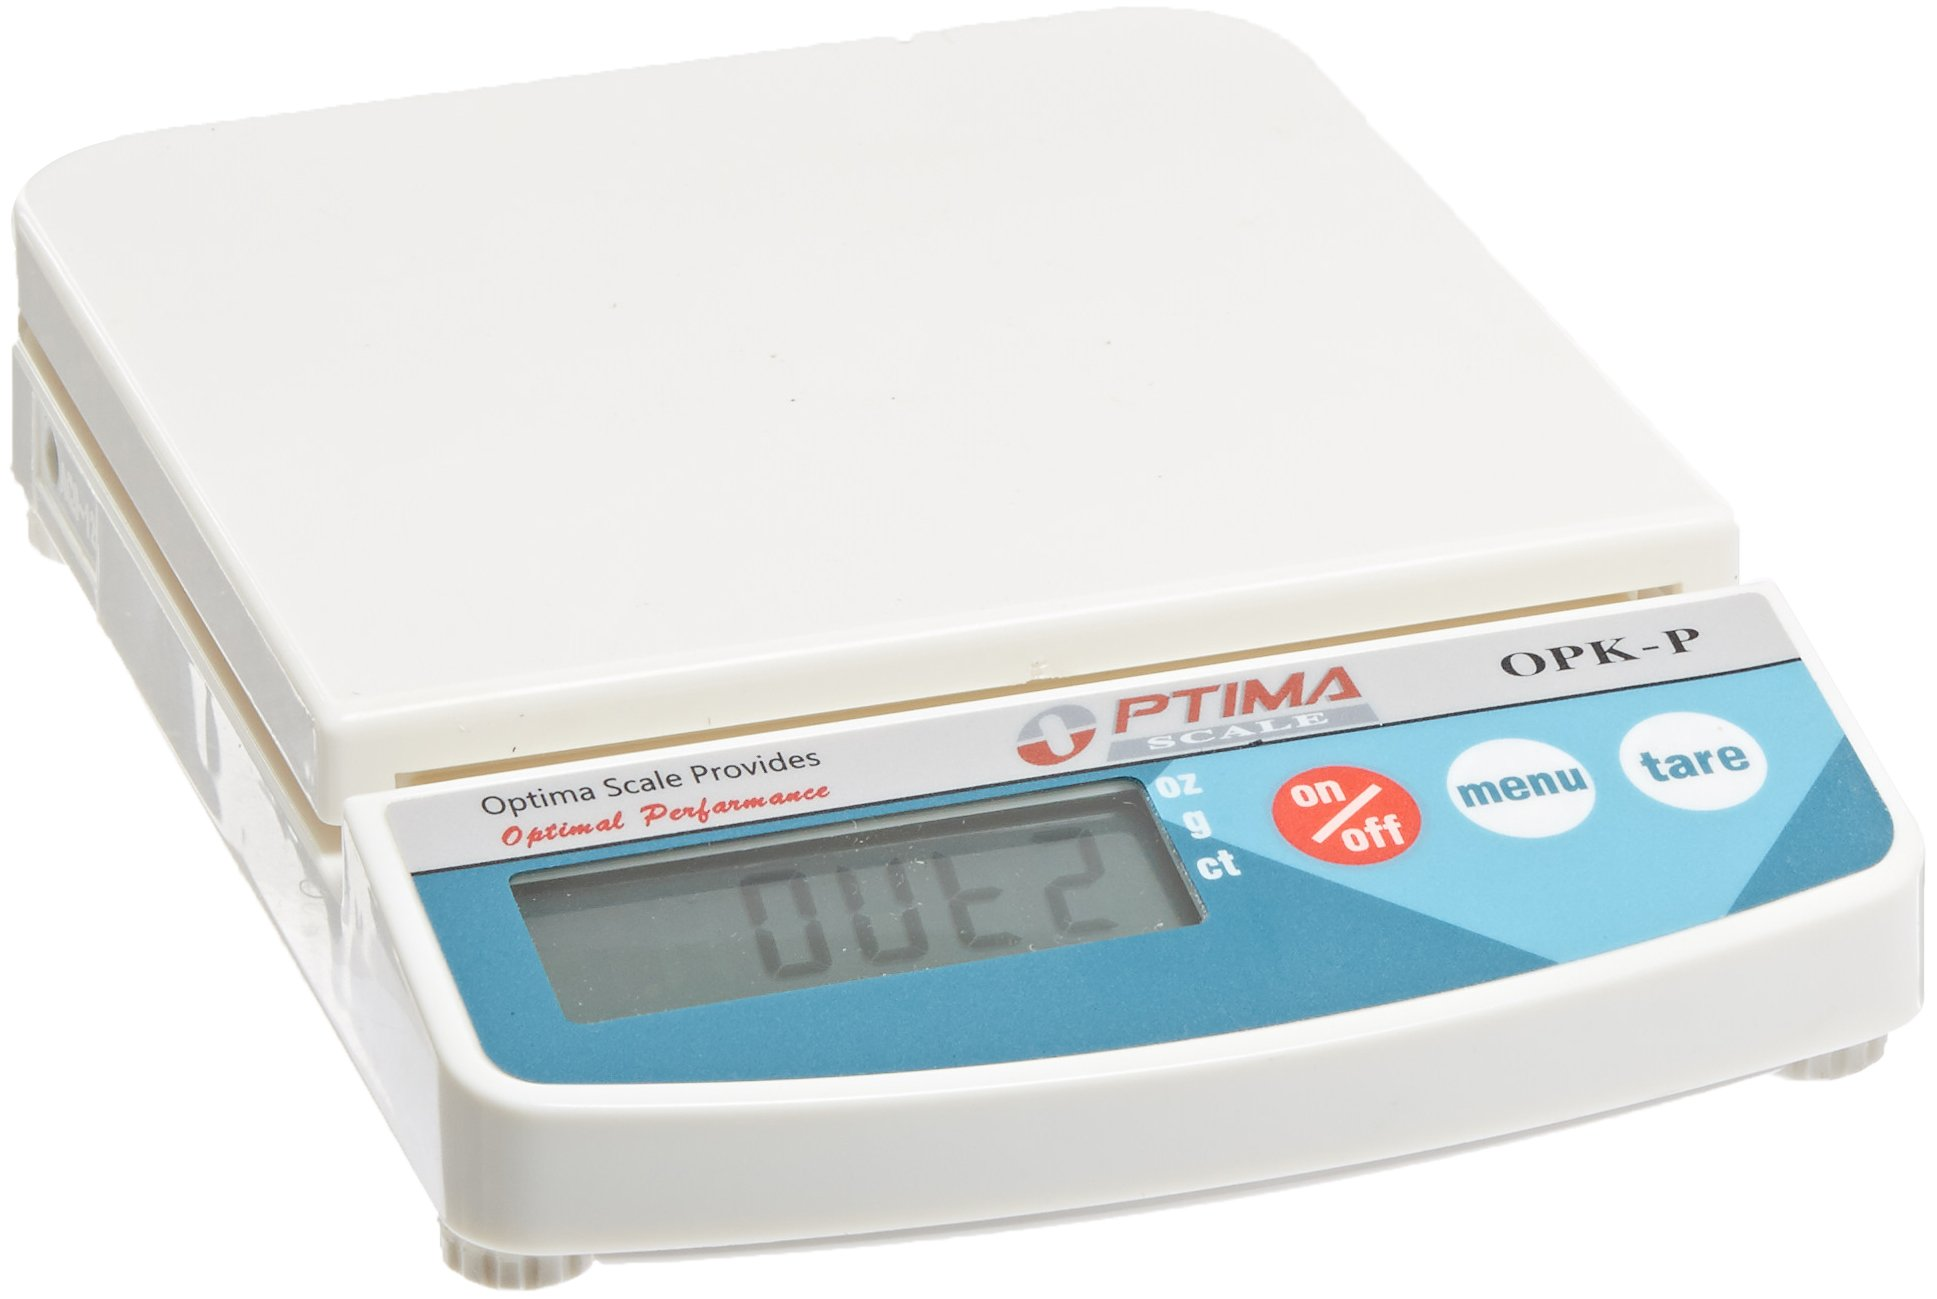 Optima Scales OPK-P500 Compact Digital Precision Scale Balance, 500g x 0.1g, Plastic Pan